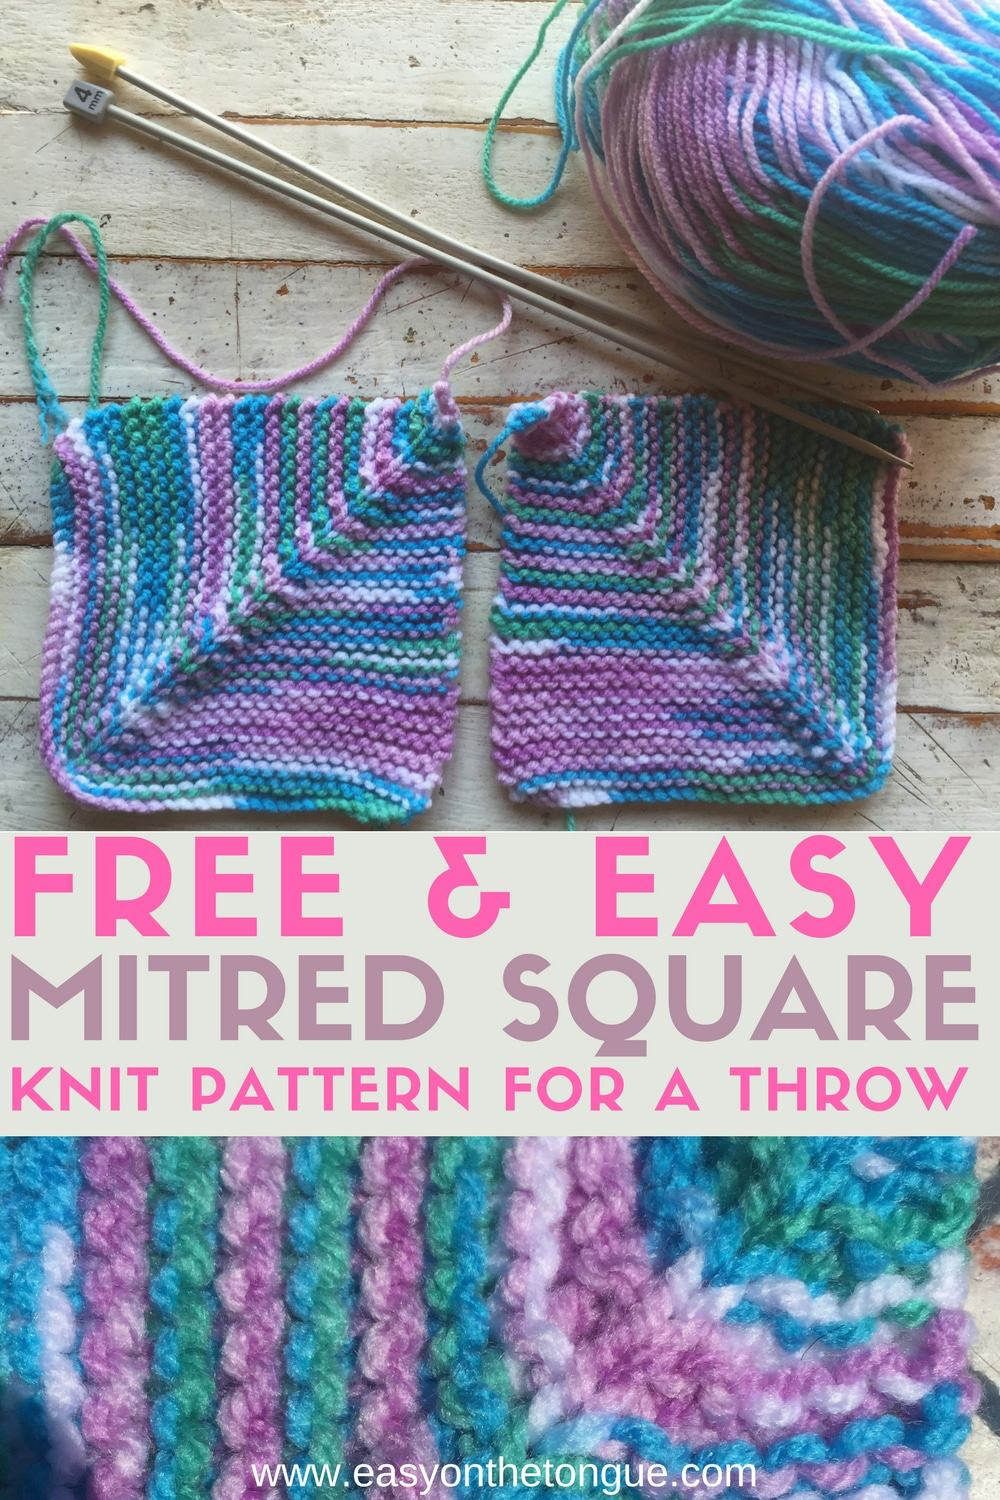 Free Easy Halloween Pop Culture: Free Easy Knit Square Pattern To Make A Quick Throw